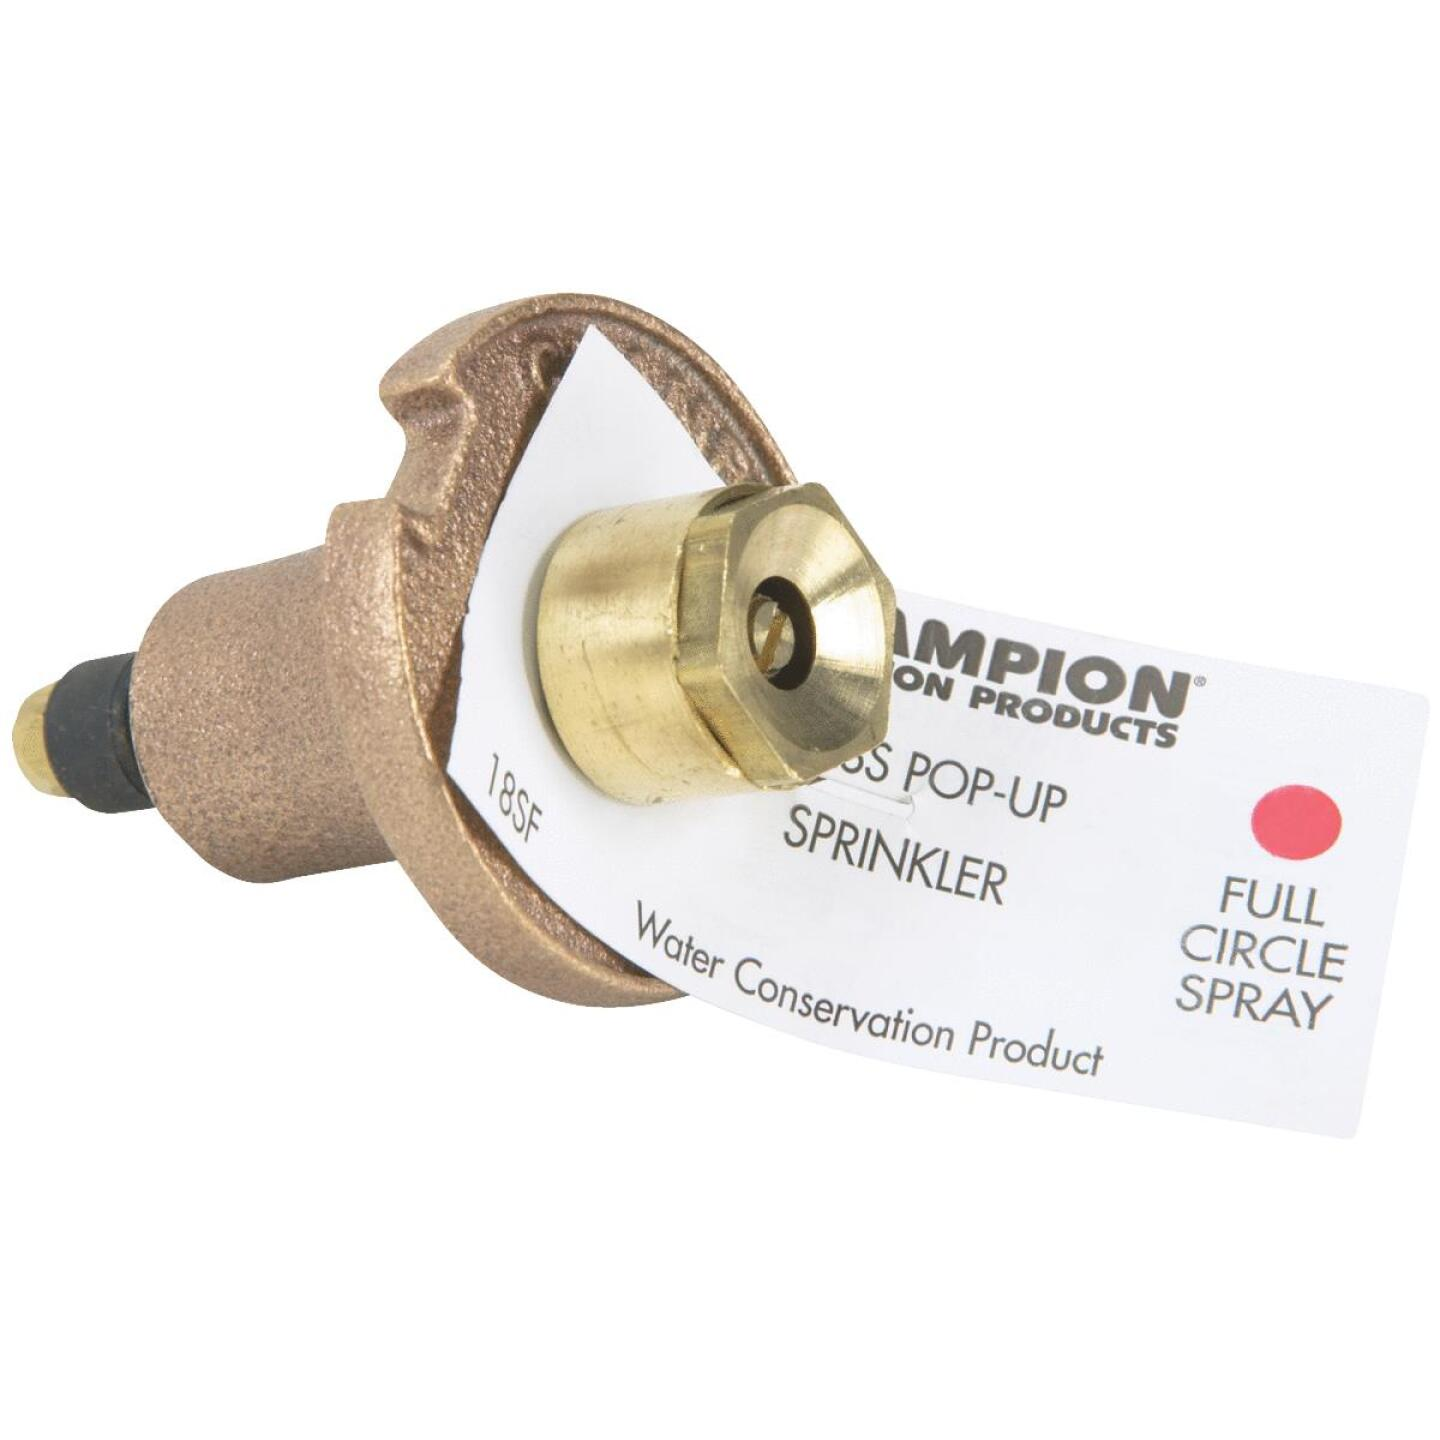 Champion 1.25 In. Full Circle Brass Pop-Up Sprinkler with Brass Nozzle Image 2